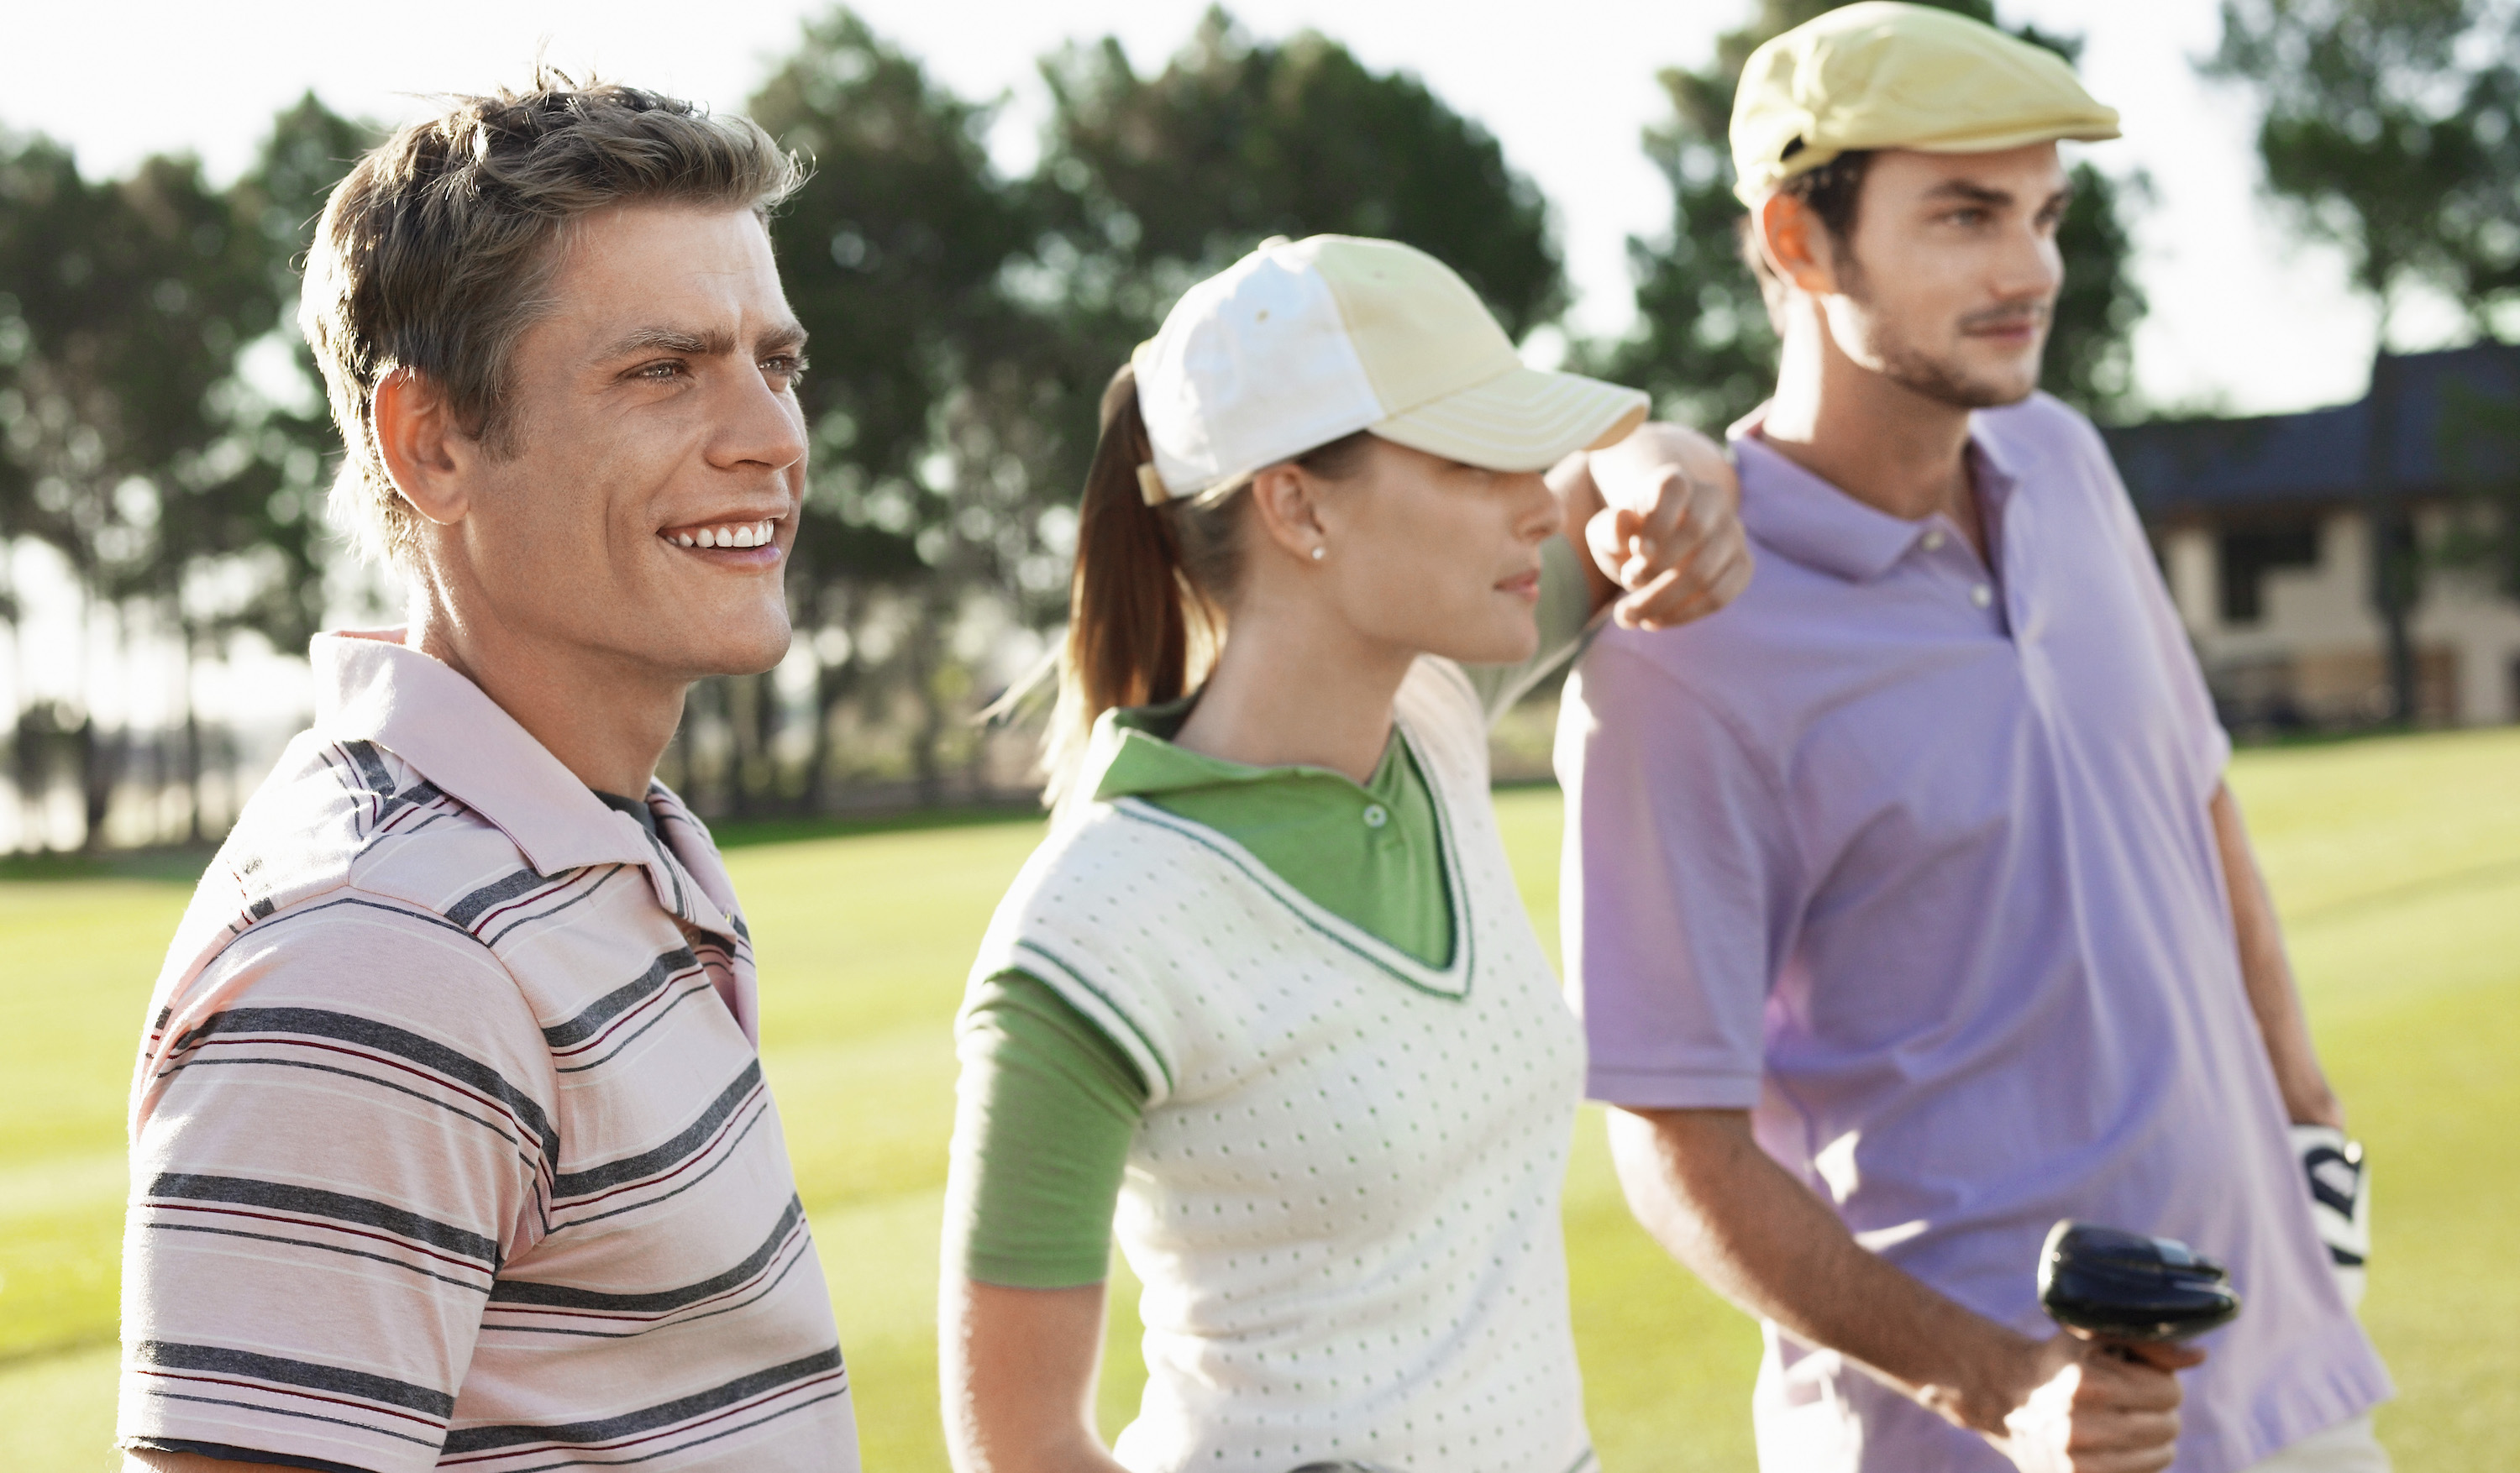 young golfers _ golf tee time reservation software